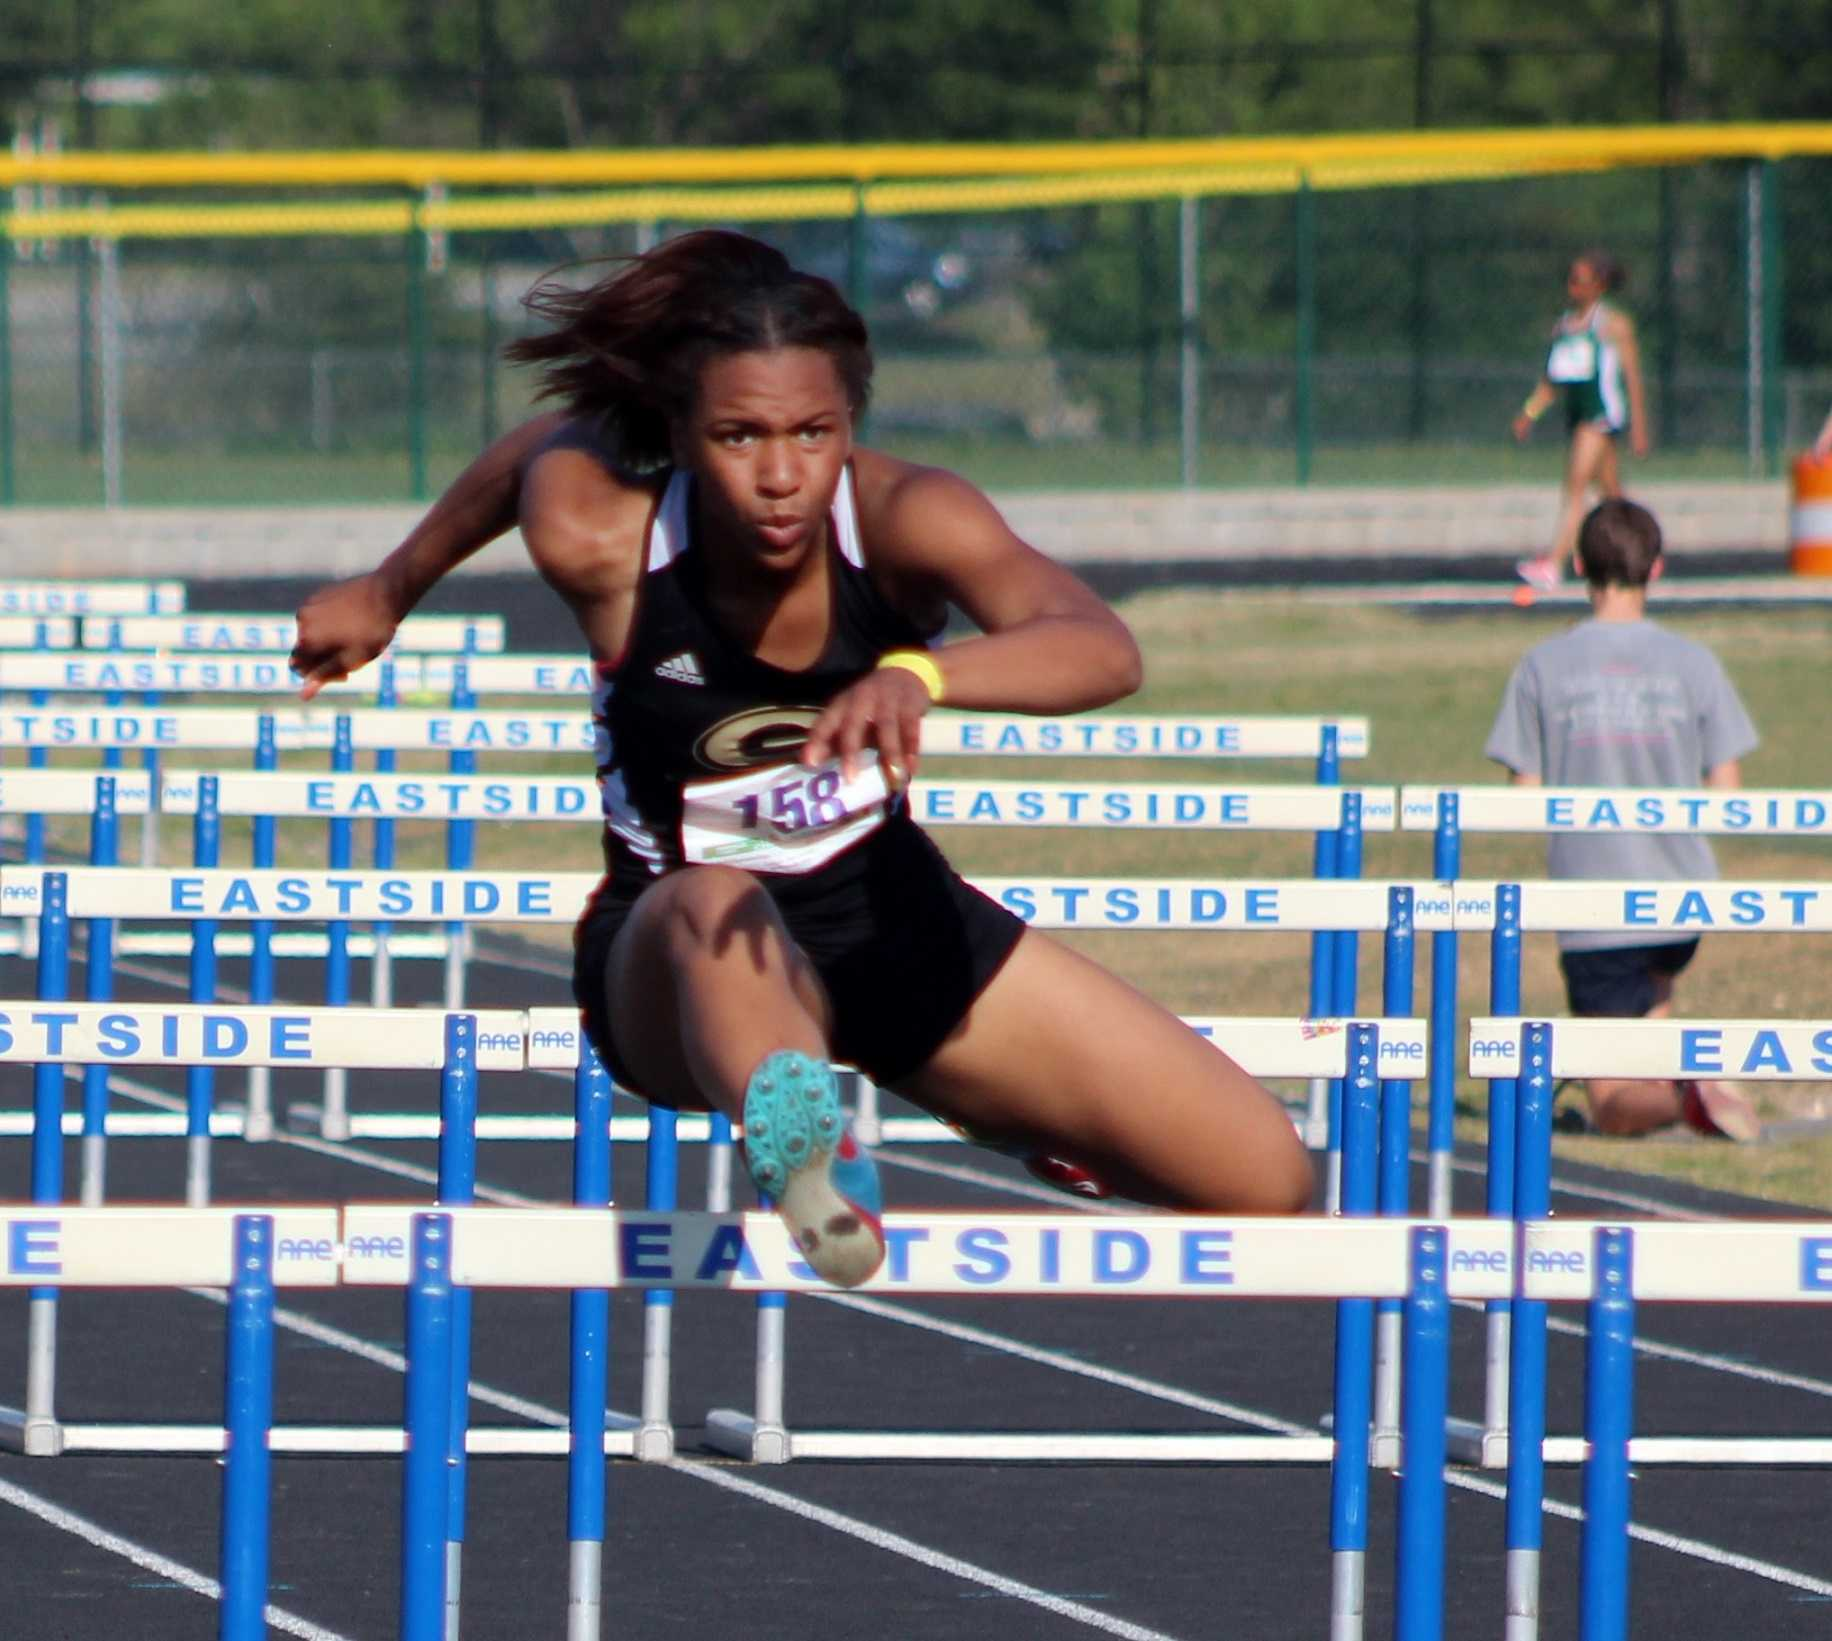 Greer High School Sophomore Kaiya Bradford clears a hurdle to finish the 100 Hurdle event at the Greenville County Track and Field Championships Wednesday night at Eastside High School.